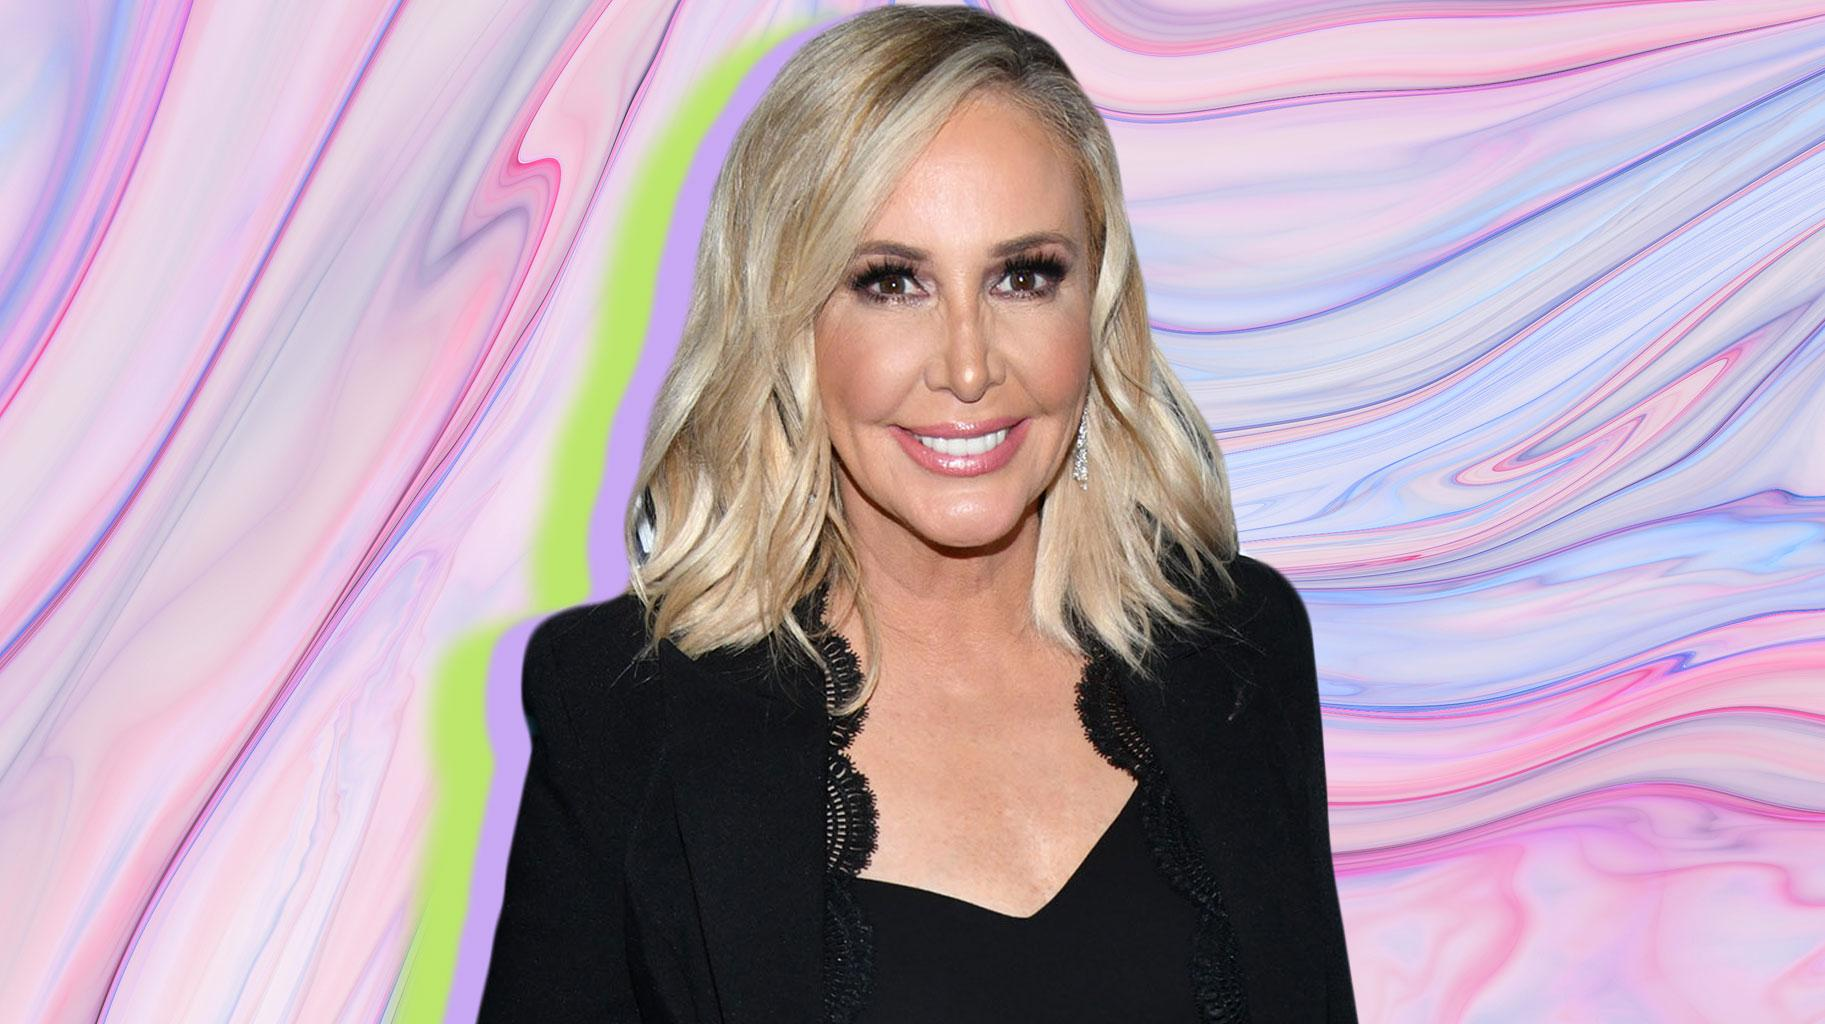 Shannon Beador Reportedly 'Nervous' To Be Back On RHOC Without Her 'Amigas' Vicki Gunvalson And Tamra Judge - Here's Why!